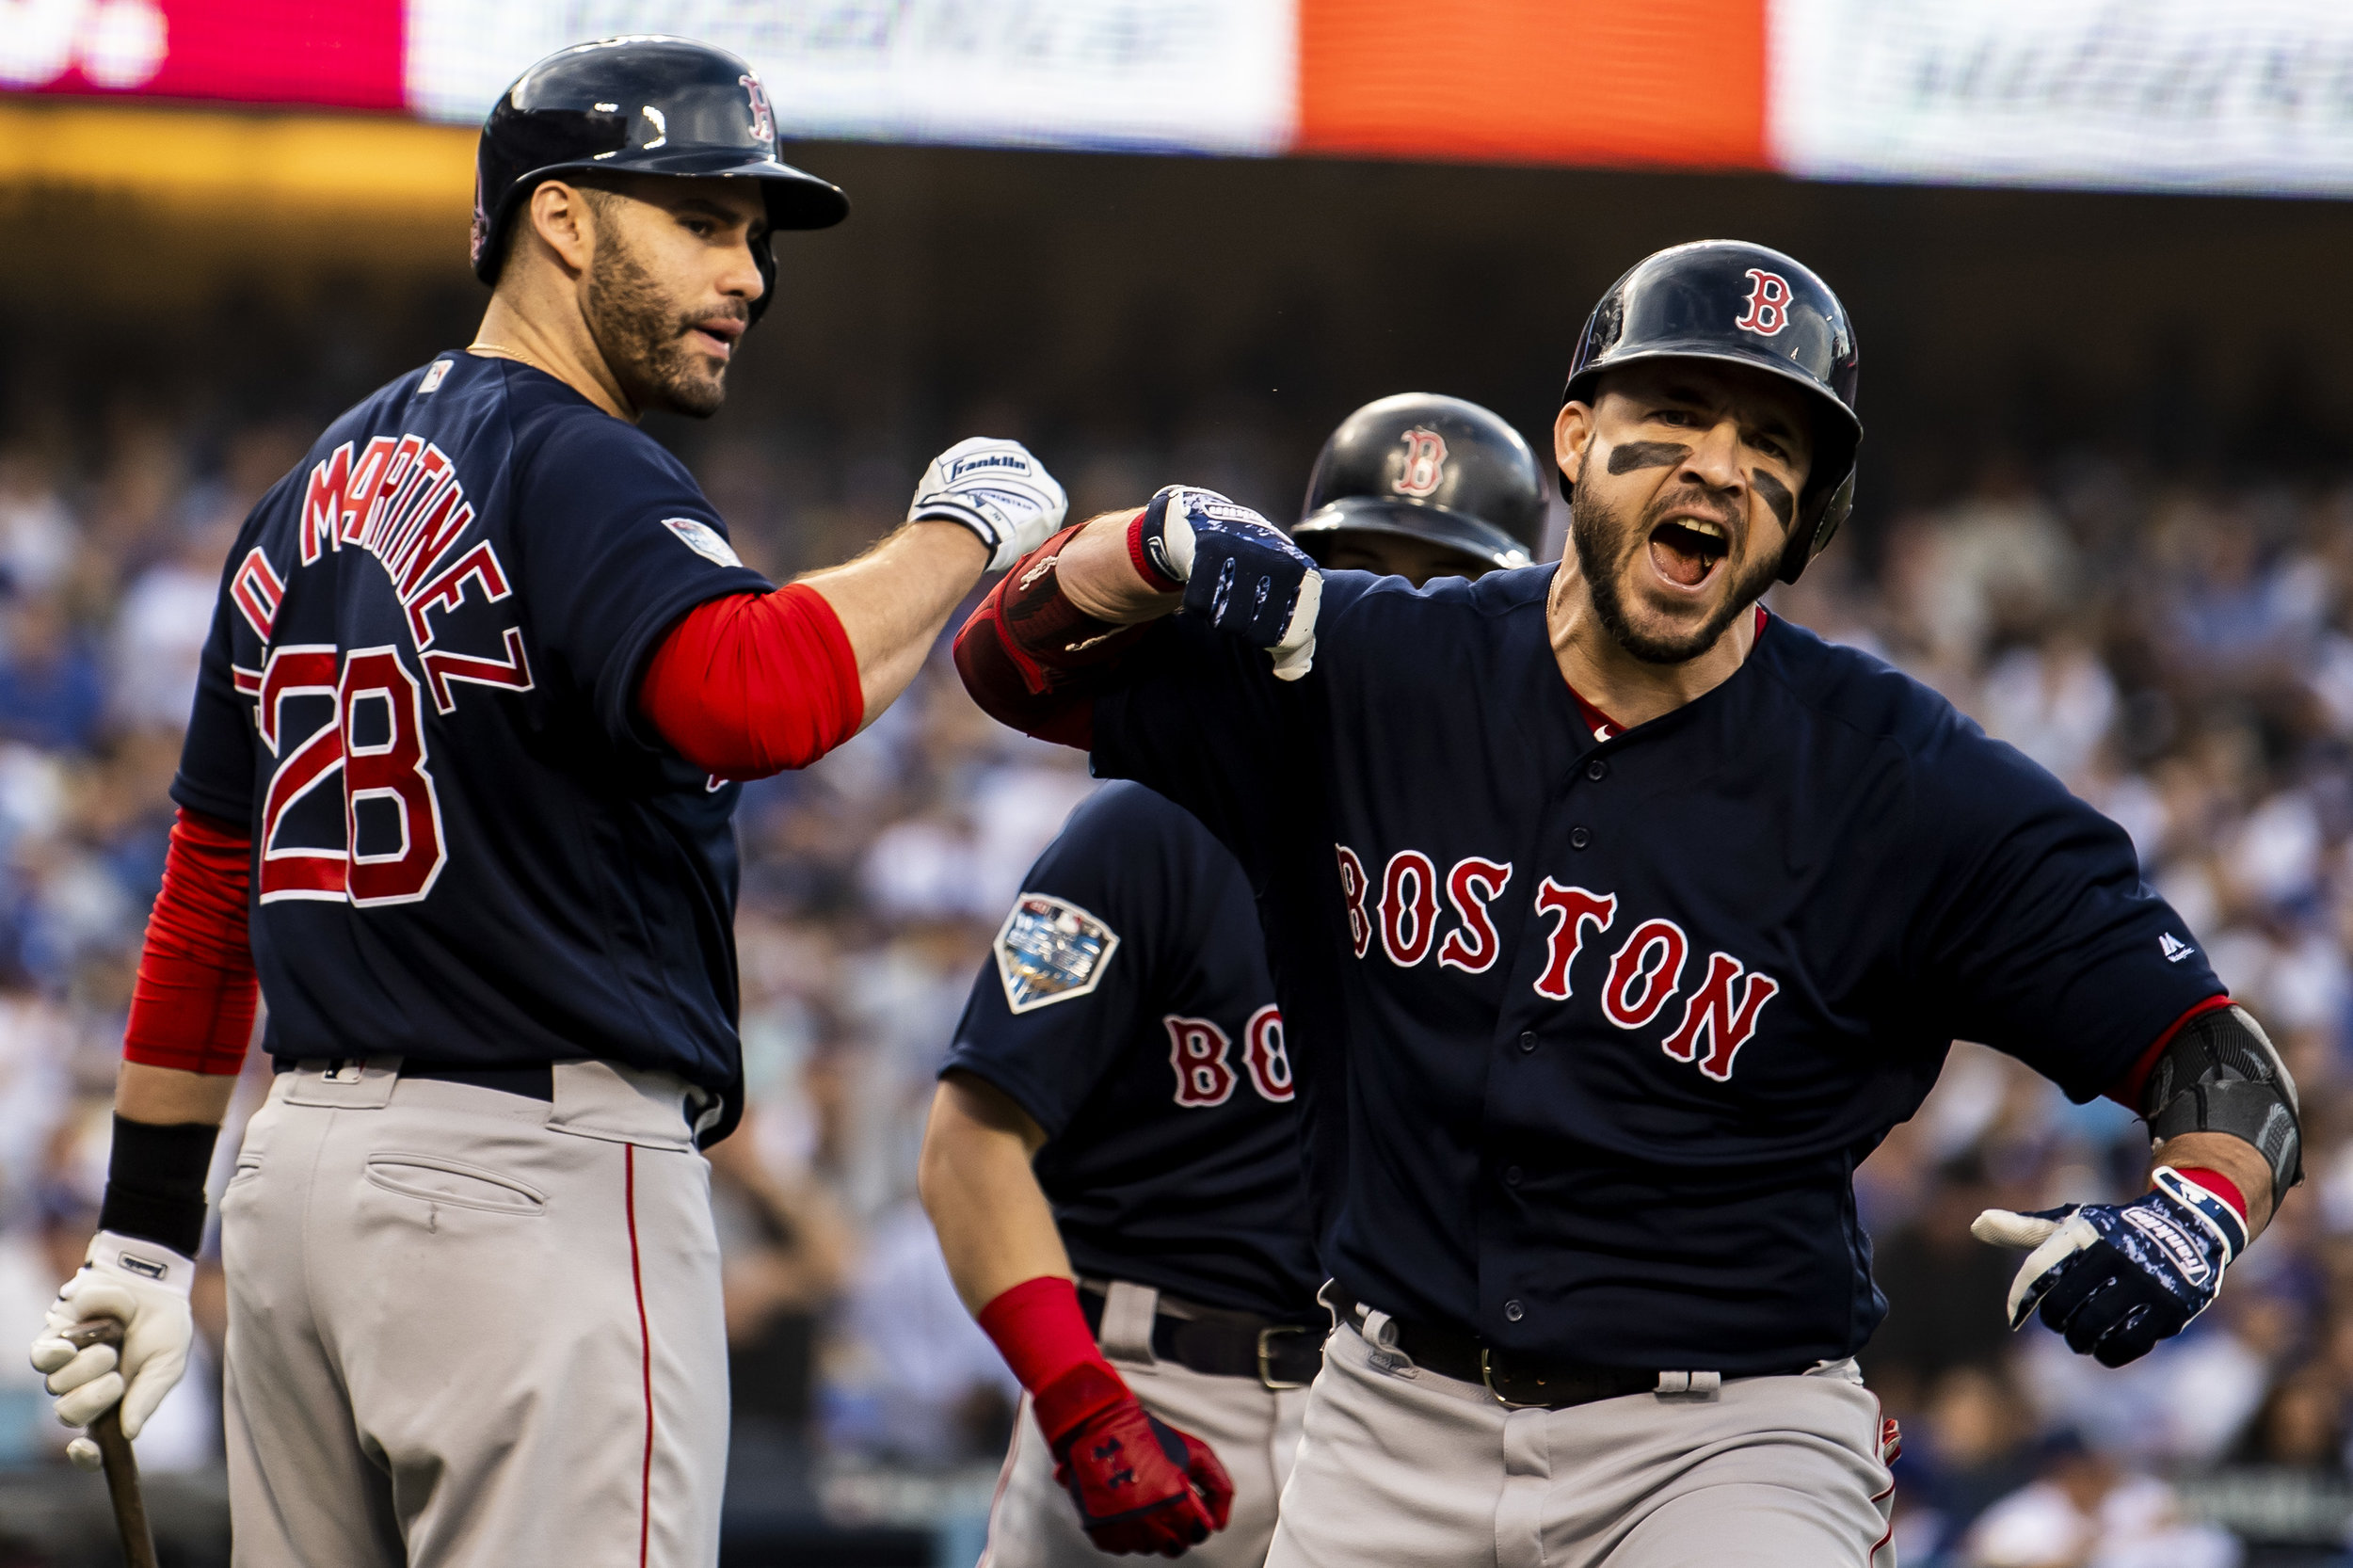 October 28, 2018, Los Angeles, Ca: Boston Red Sox infielder Steve Pearce celebrates after hitting a home run as the Boston Red Sox face the Los Angeles Dodgers in Game 5 of the World Series at Dodger Stadium in Los Angeles, California on Saturday, October 28, 2018. (Photo by Matthew Thomas/Boston Red Sox)